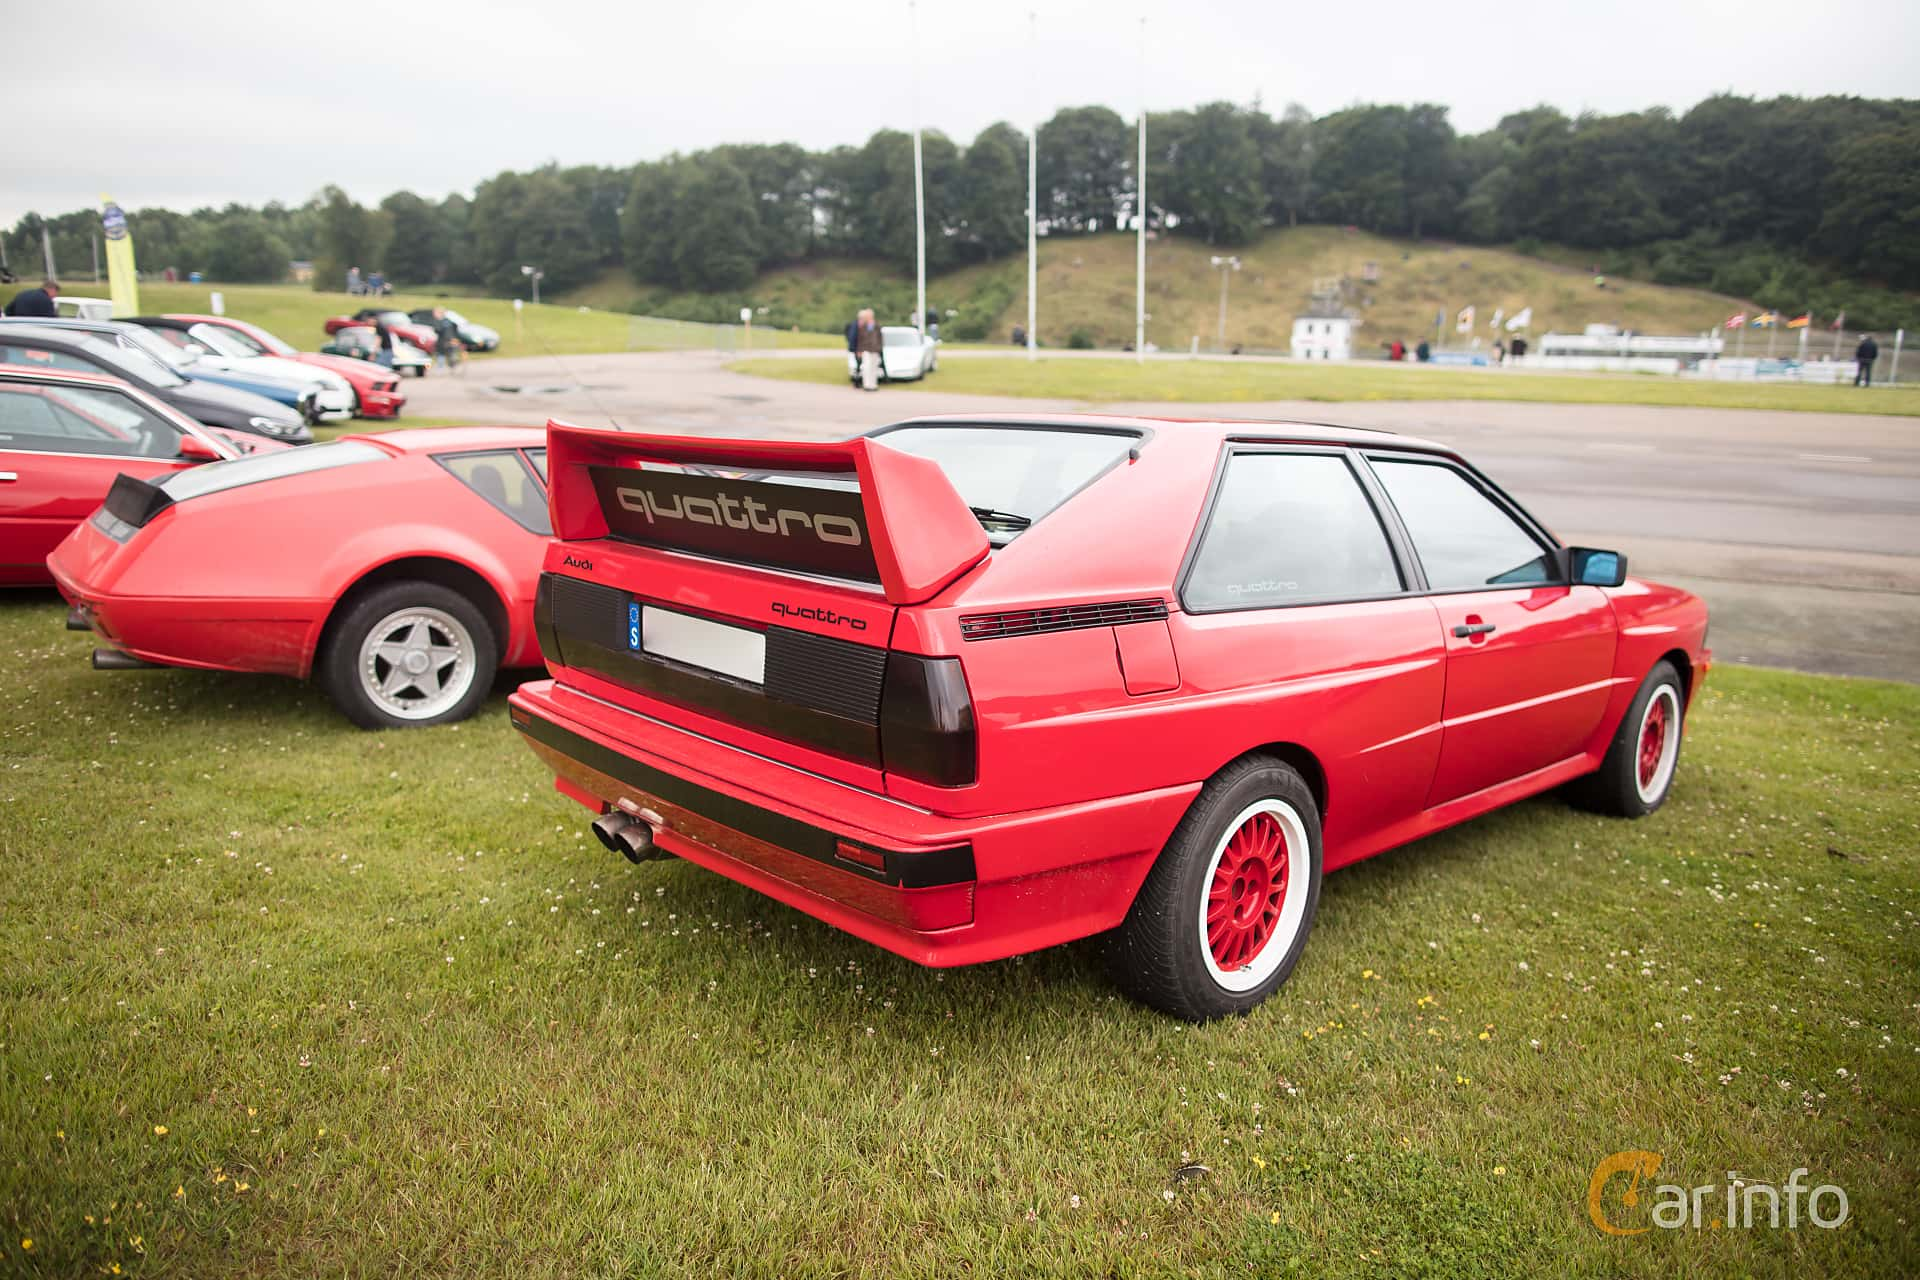 Audi quattro 2.1 quattro Manual, 200hp, 1983 at Svenskt sportvagnsmeeting 2017